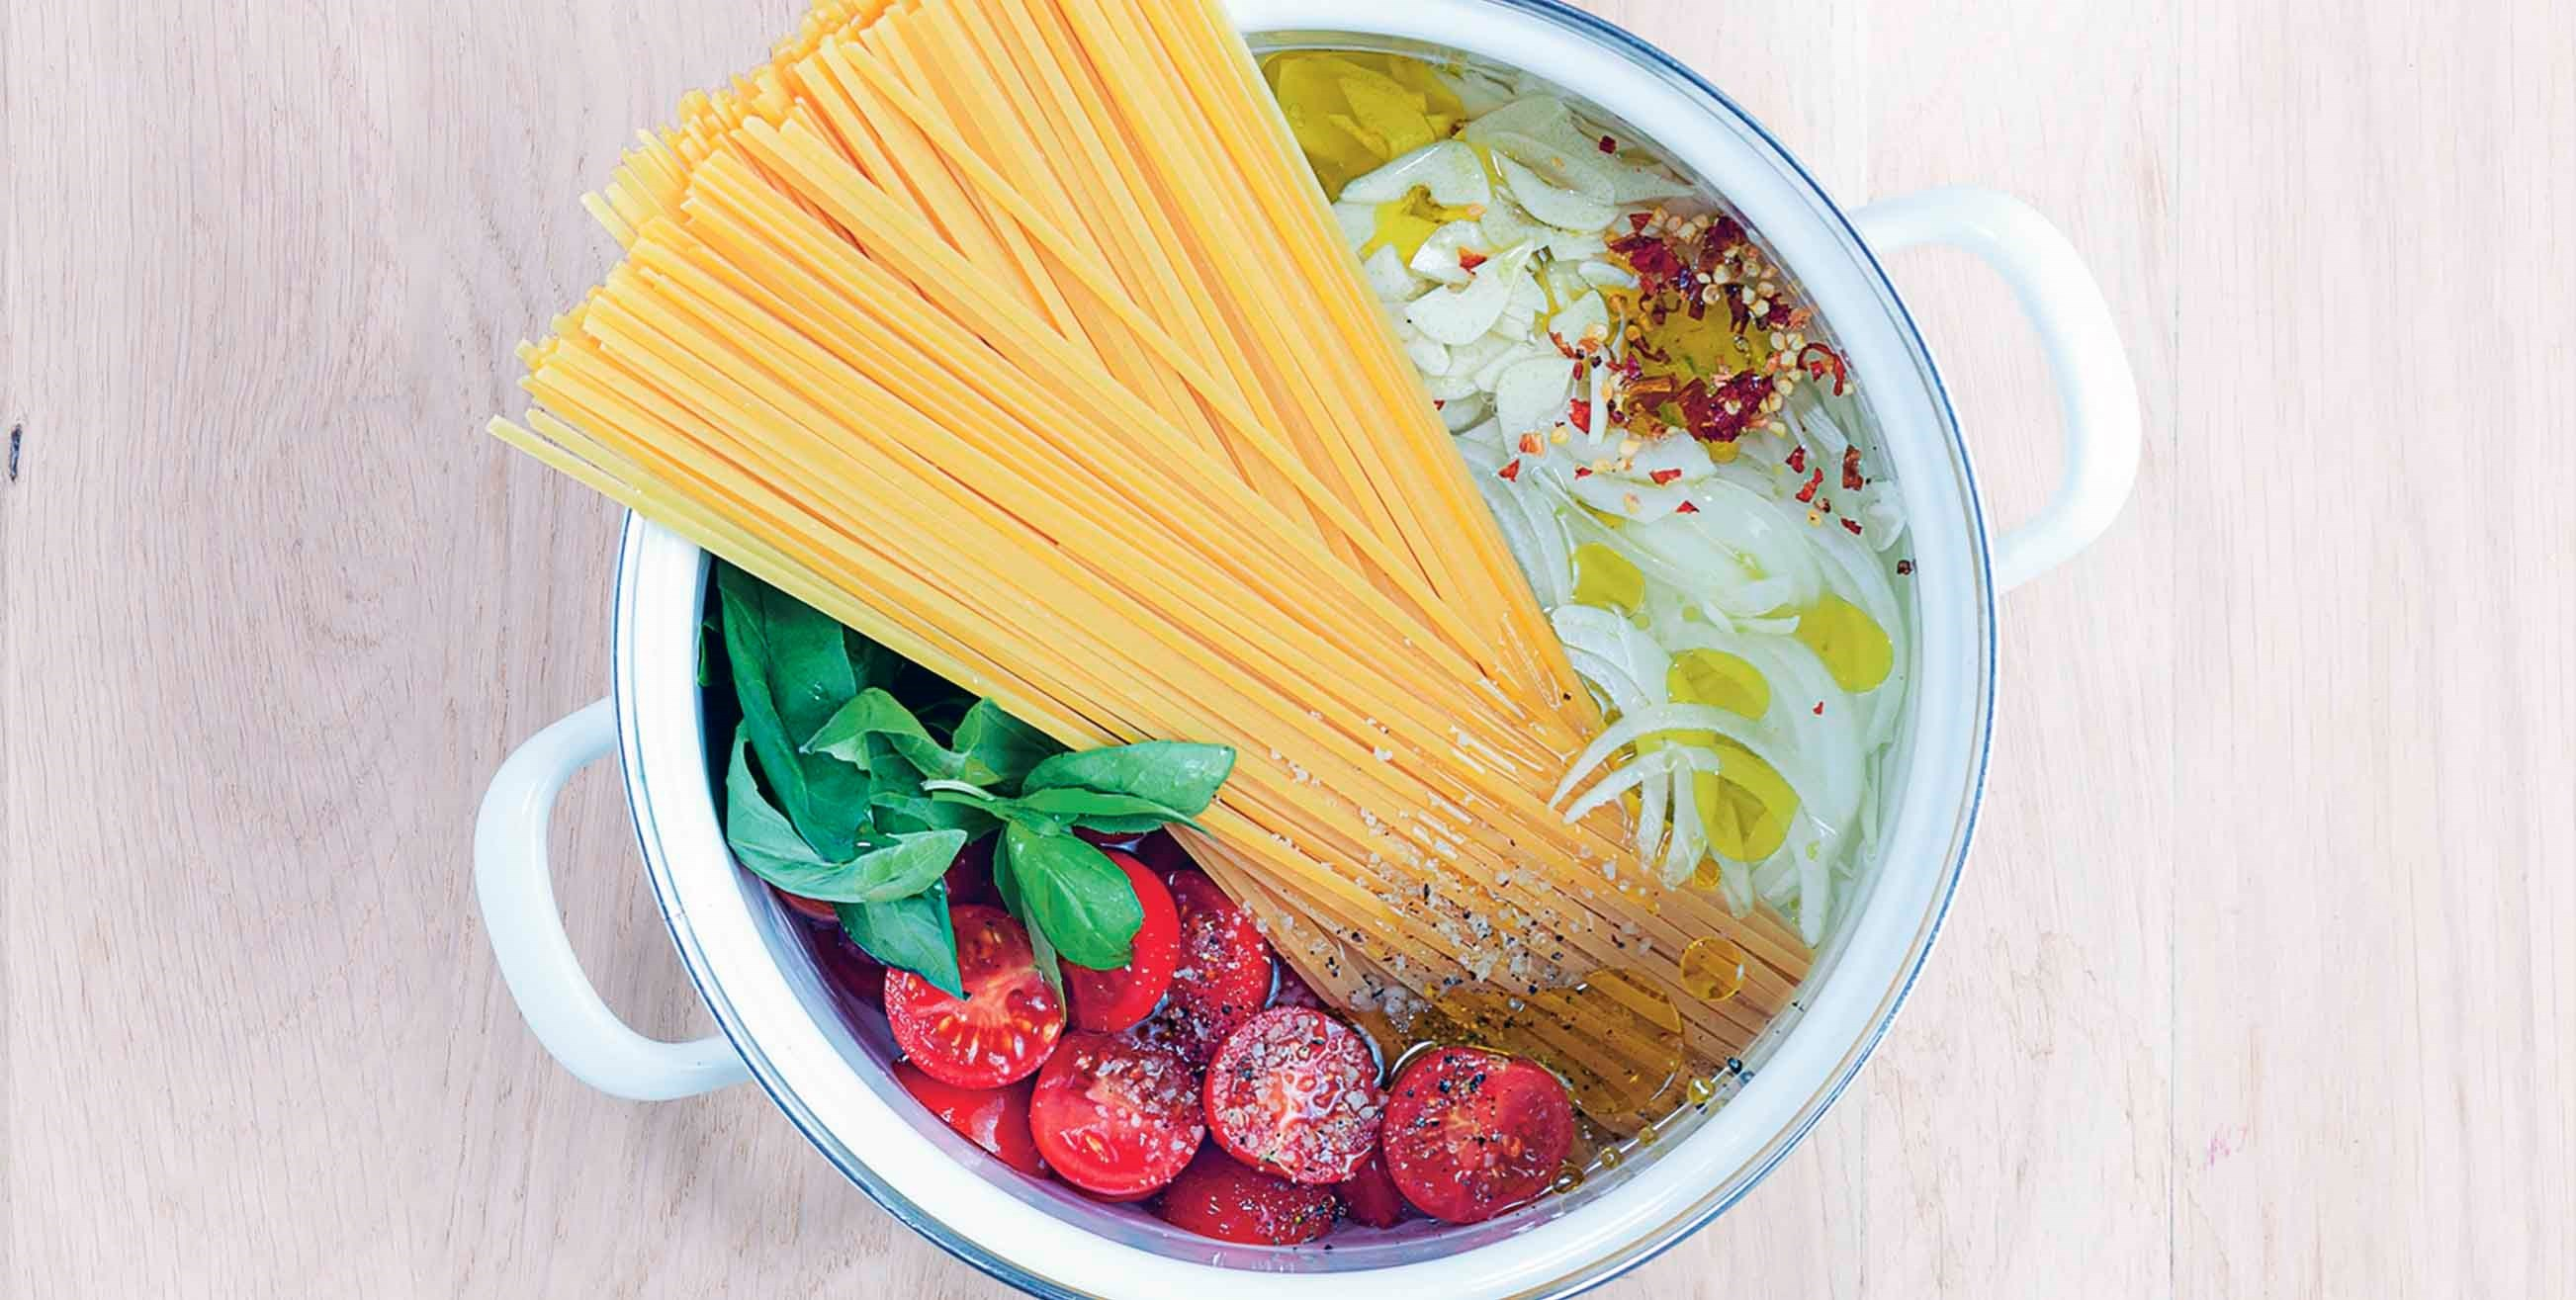 Best ever one pot pasta recipe collection